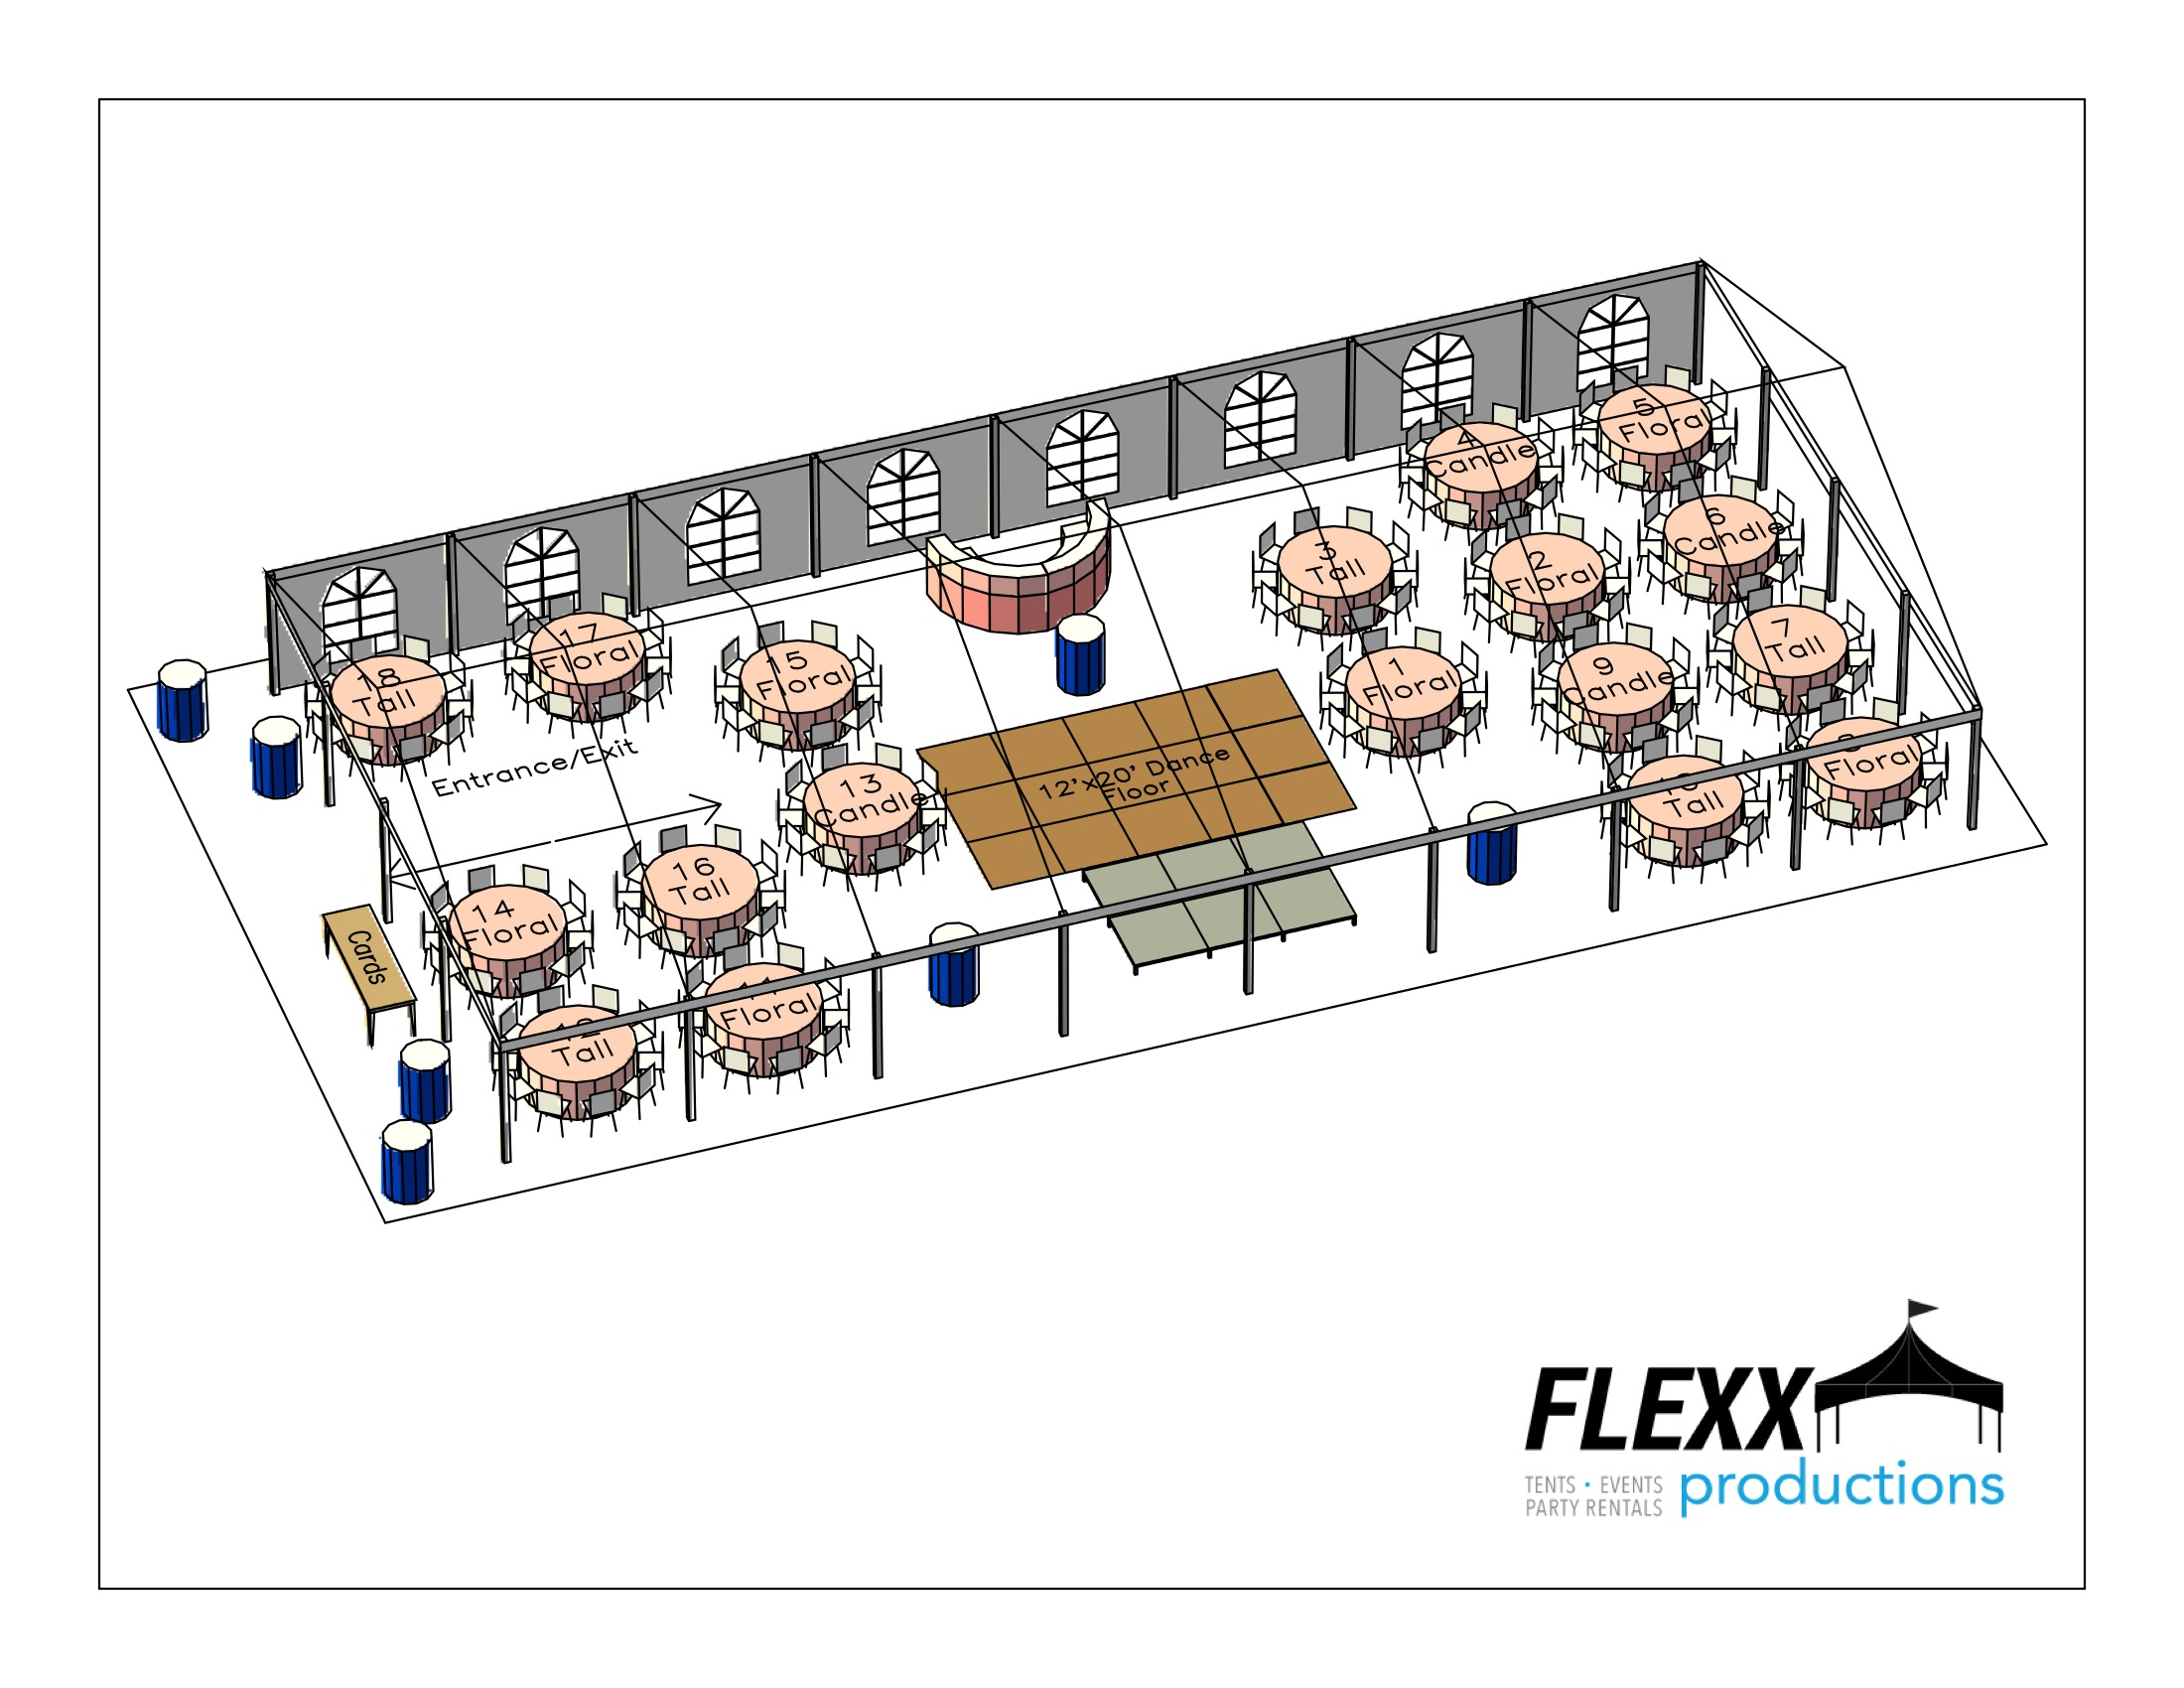 40x80 Flexx Productions Clearspan Tent Layout